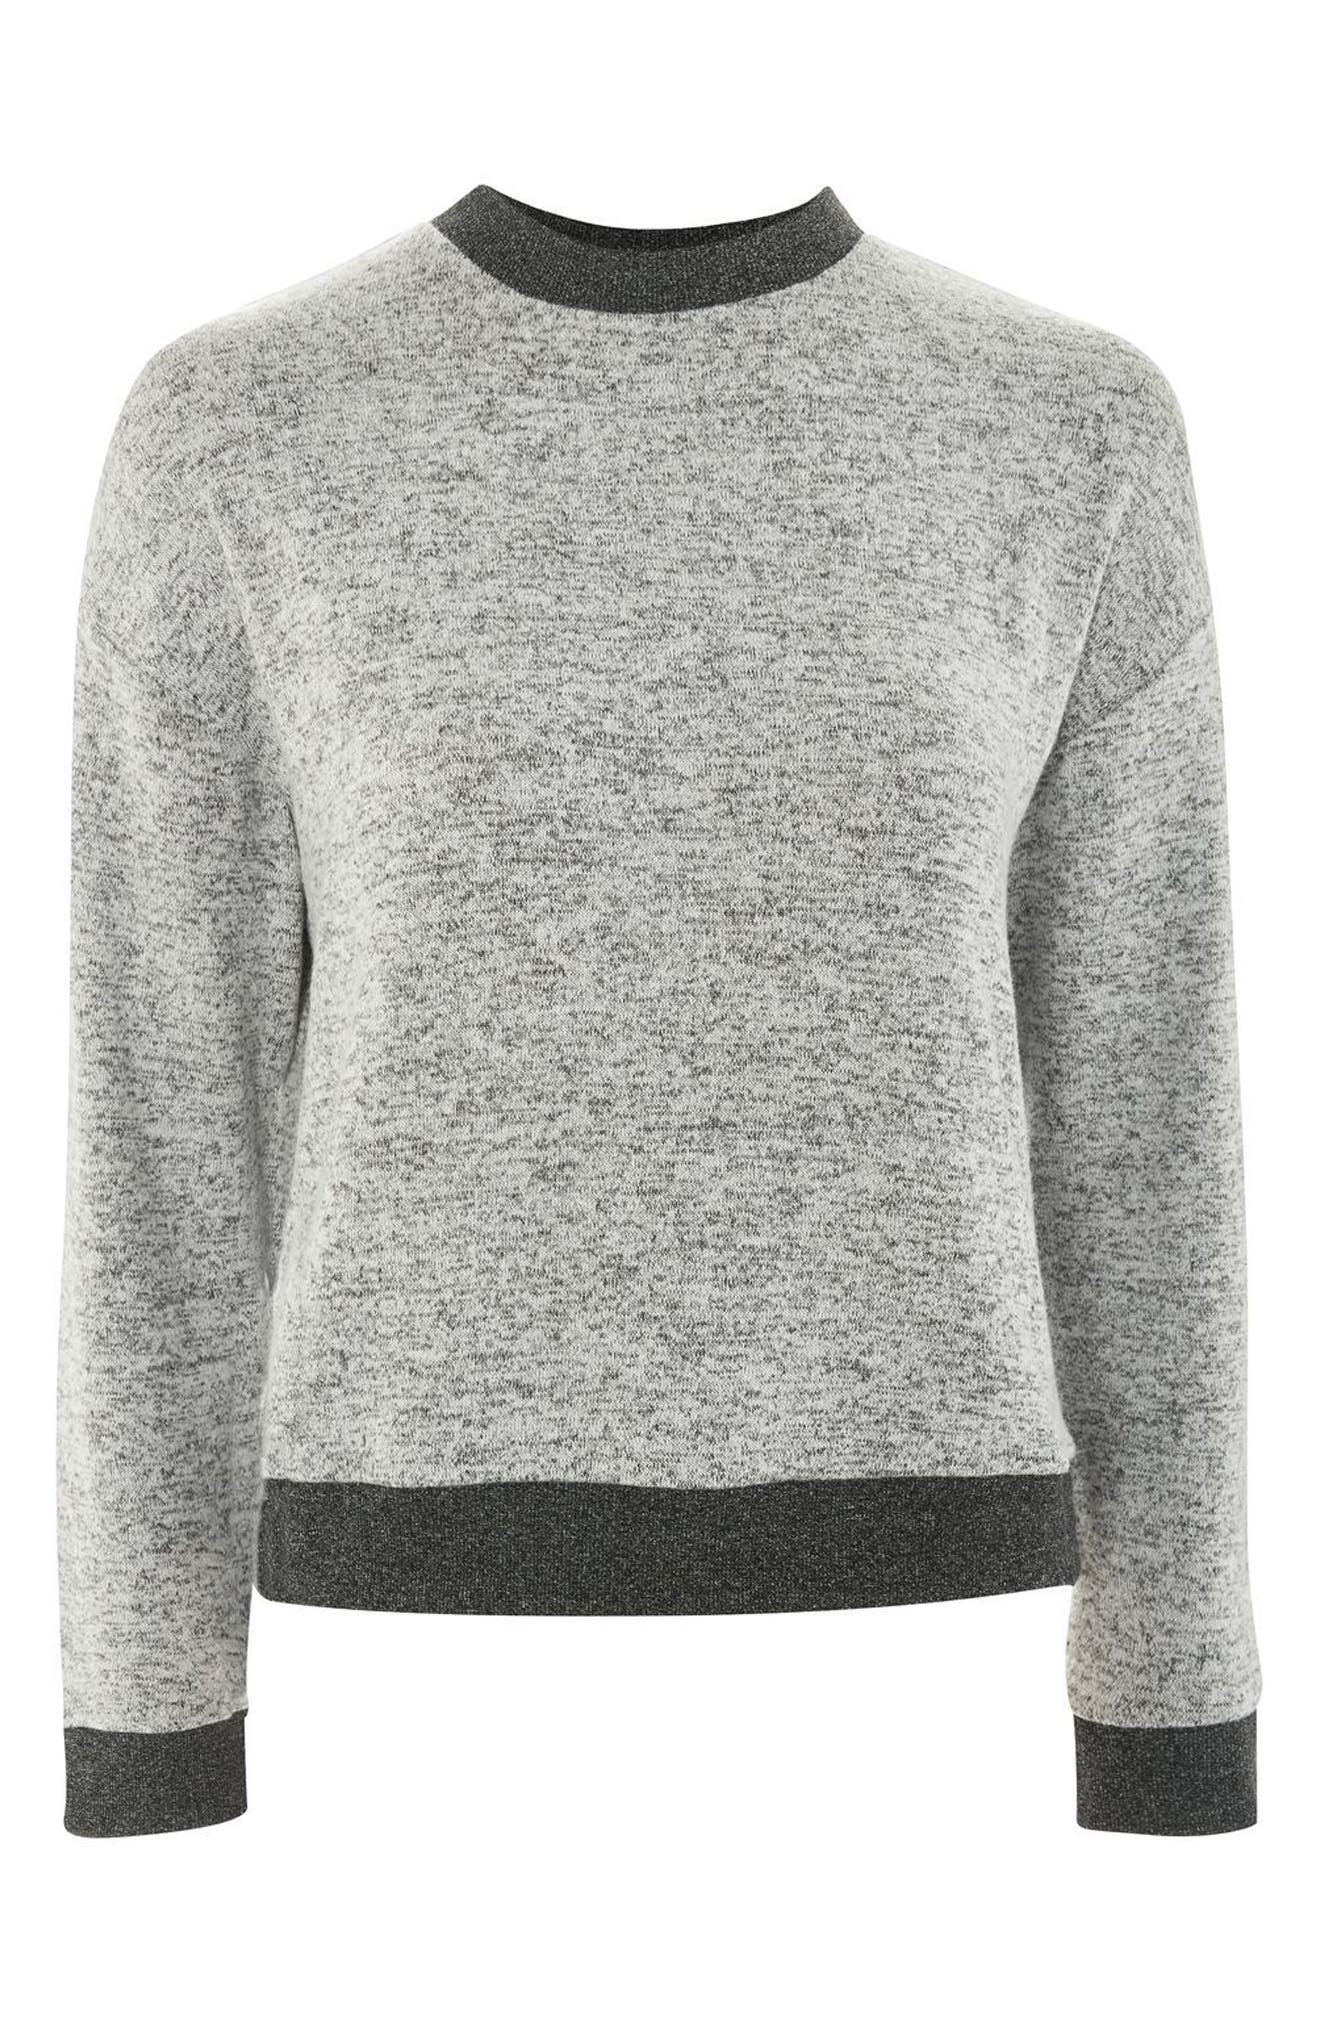 Alternate Image 3  - Topshop Soft Sweatshirt